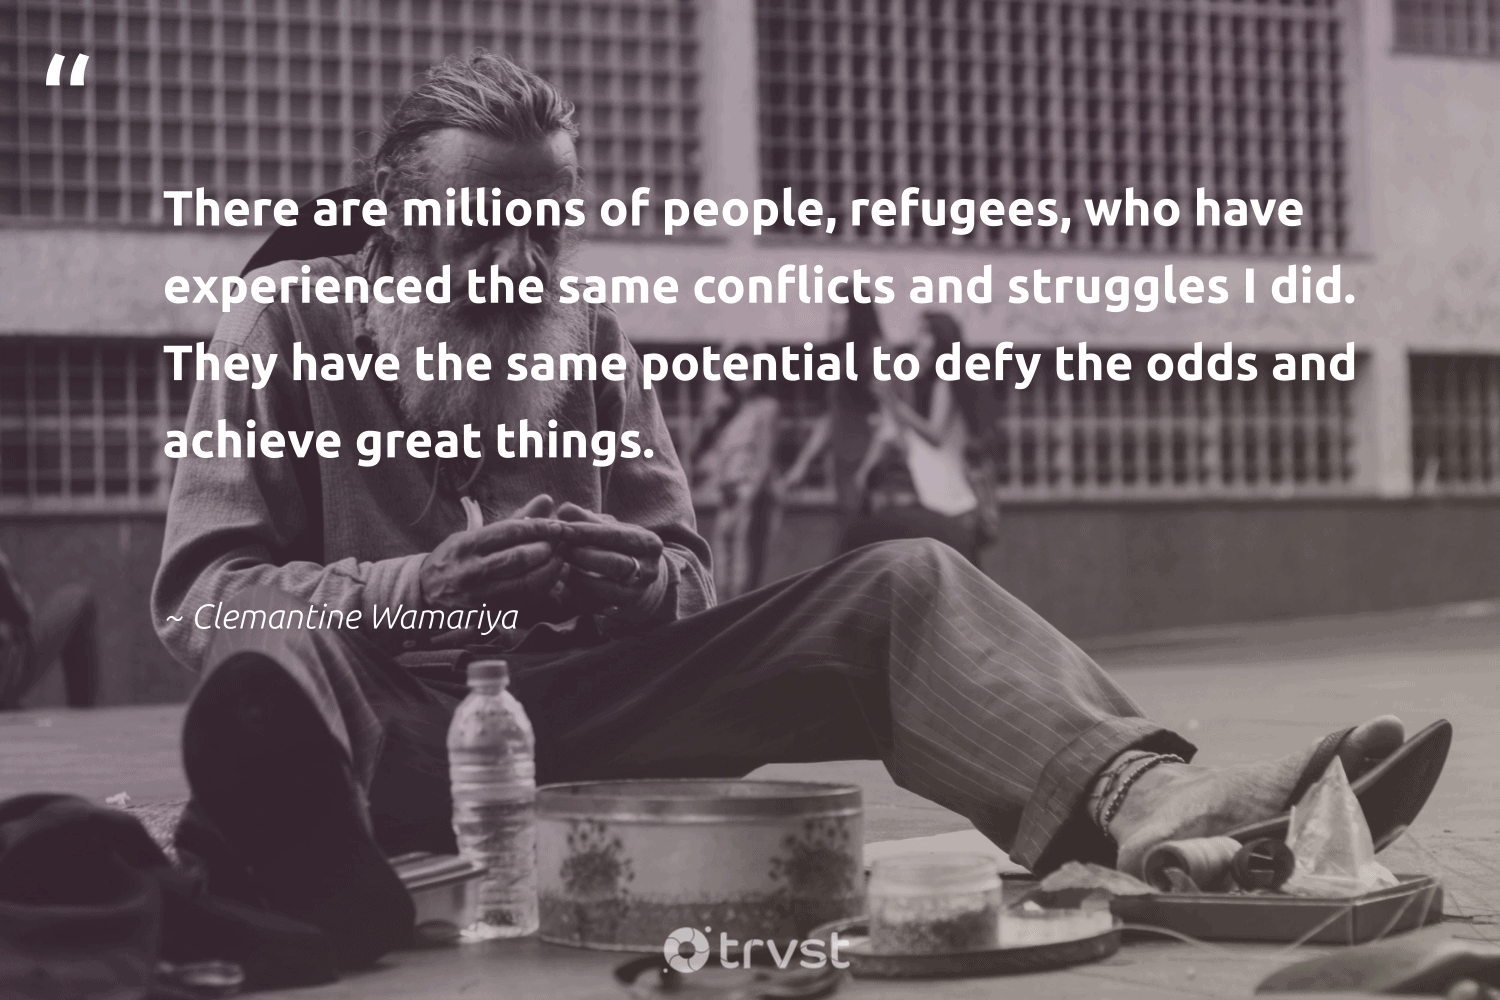 """""""There are millions of people, refugees, who have experienced the same conflicts and struggles I did. They have the same potential to defy the odds and achieve great things.""""  - Clemantine Wamariya #trvst #quotes #refugees #refugeeswelcome #makeadifference #sustainablefutures #collectiveaction #syria #equalrights #weareallone #bethechange #refugee"""